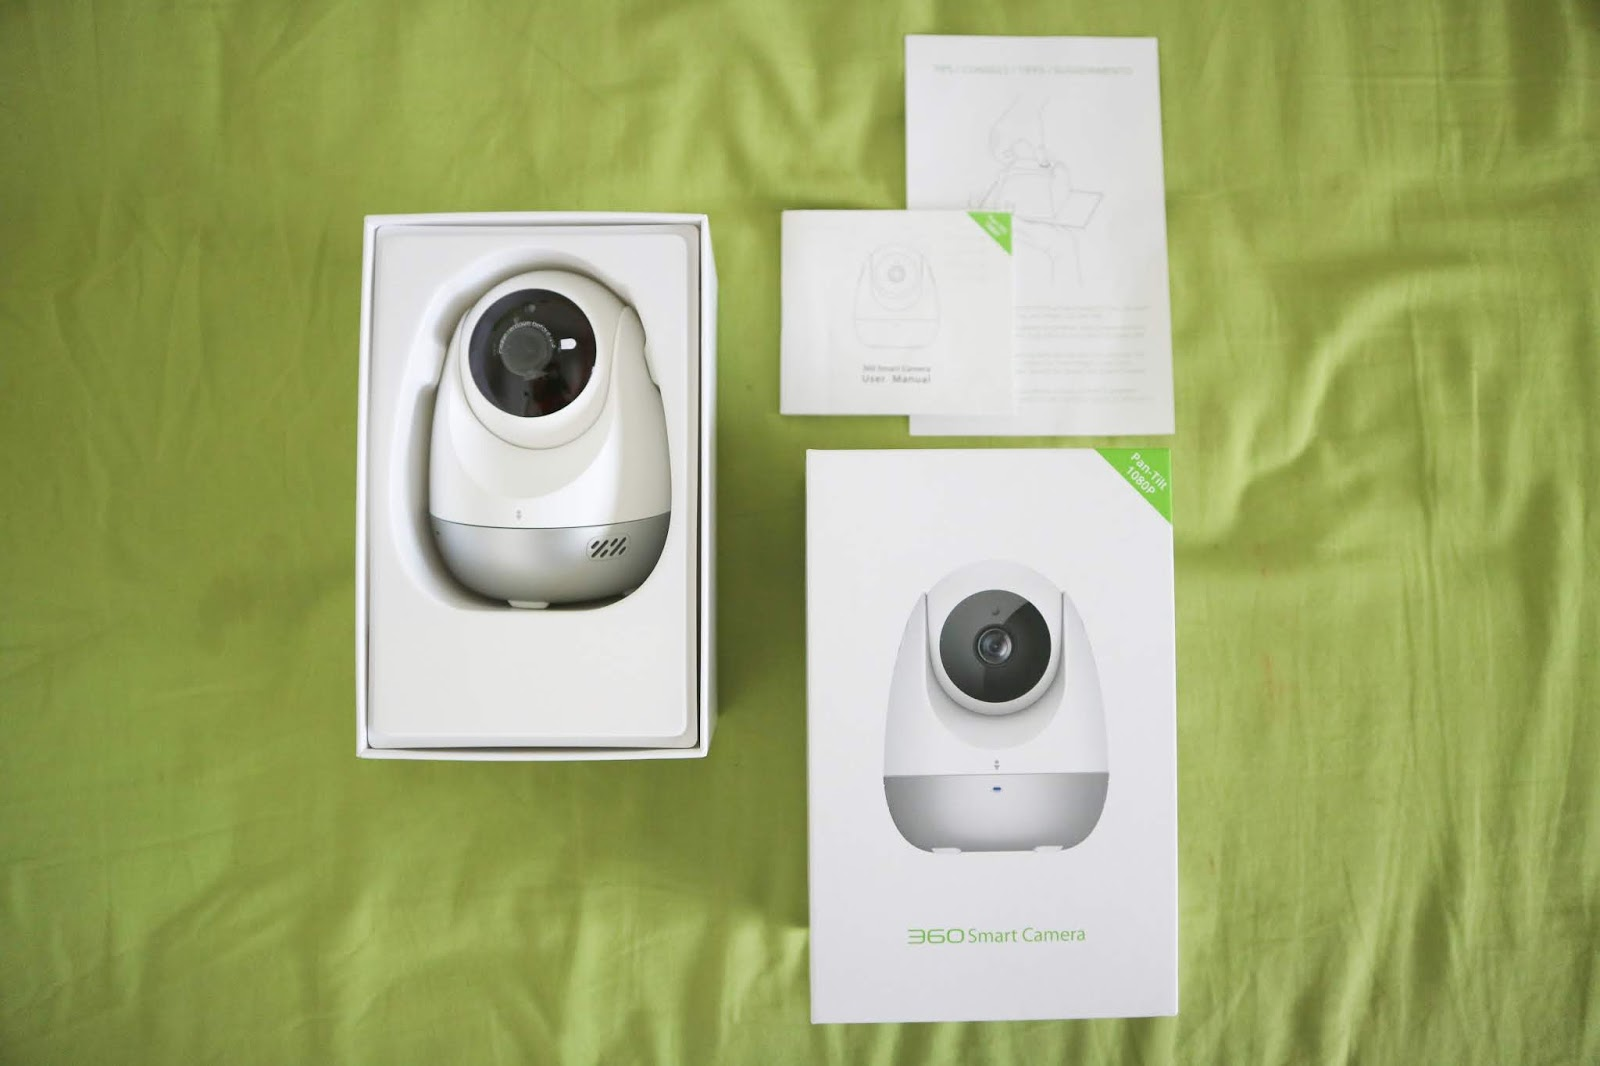 Review: Qihoo 360 Smart Camera with CRY ALERT, Night vision and more